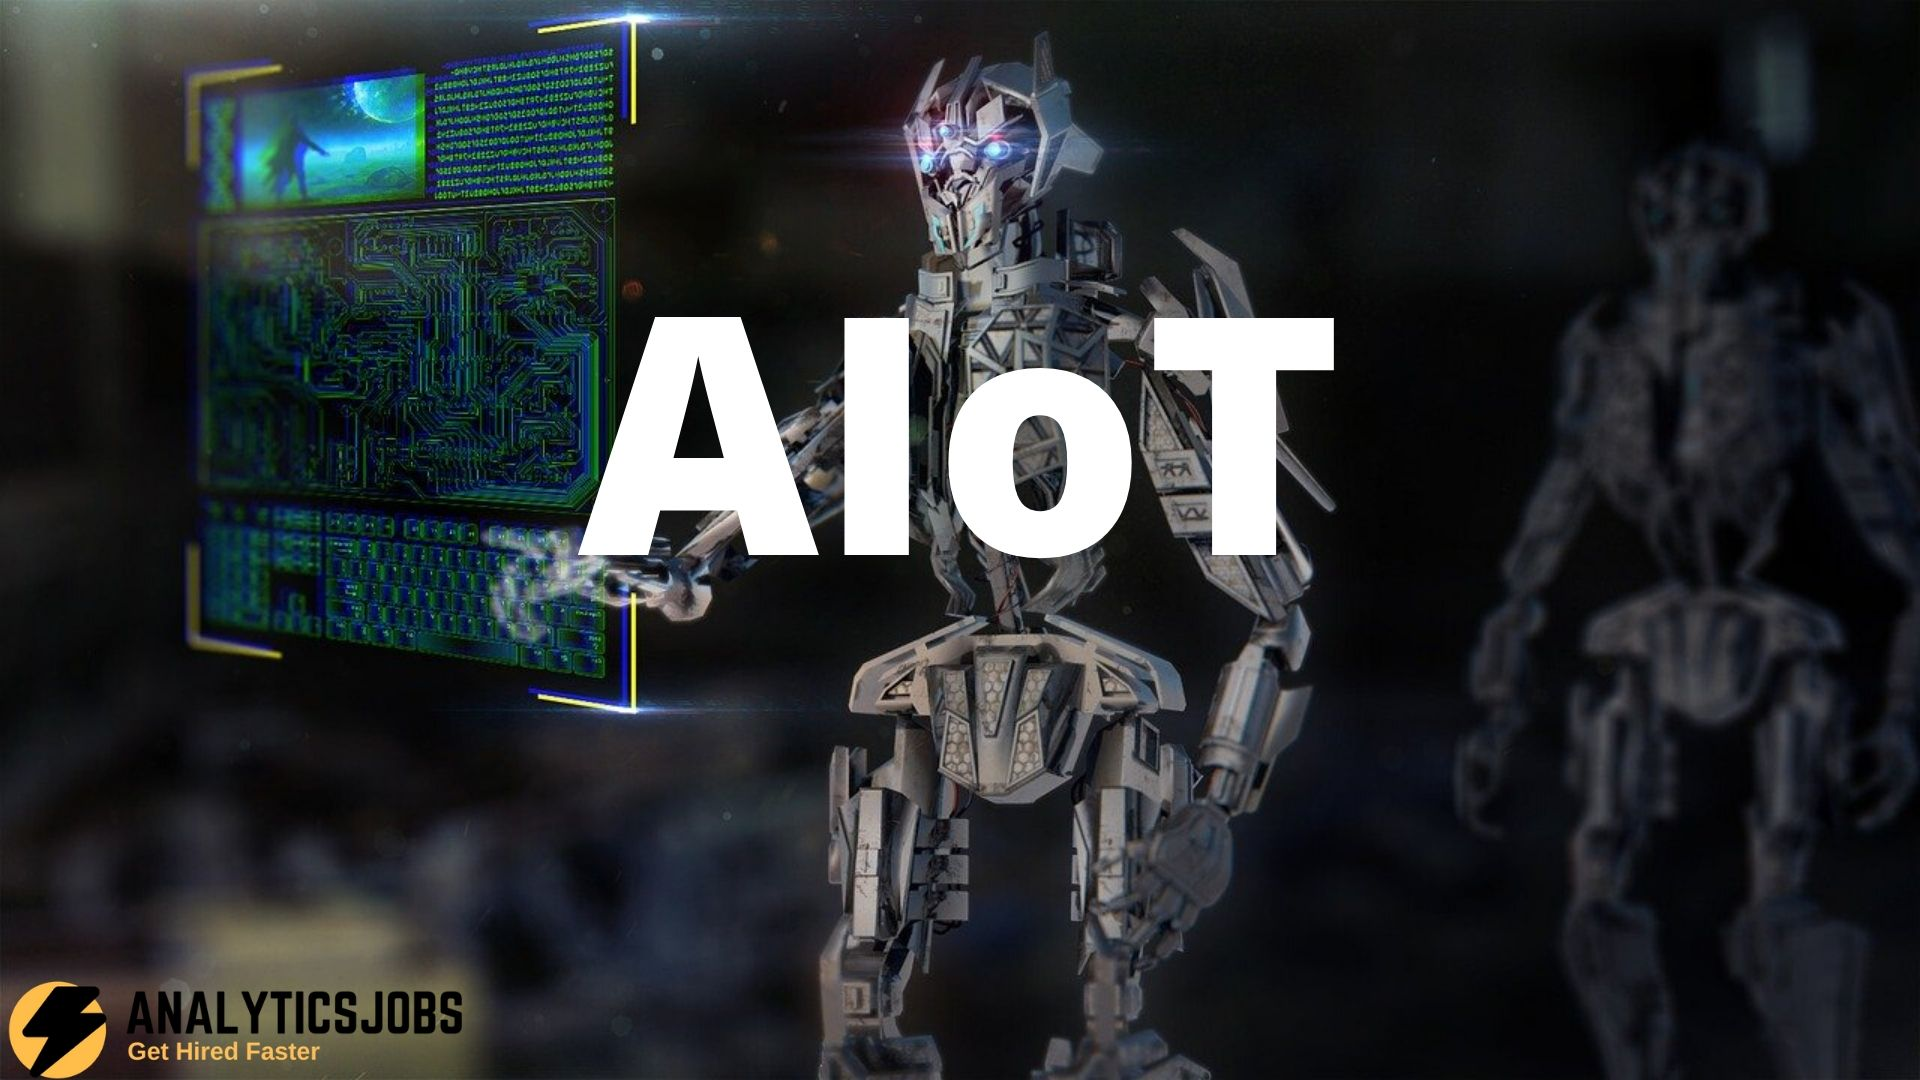 The major risk of AI and IoT in Cyber-Security